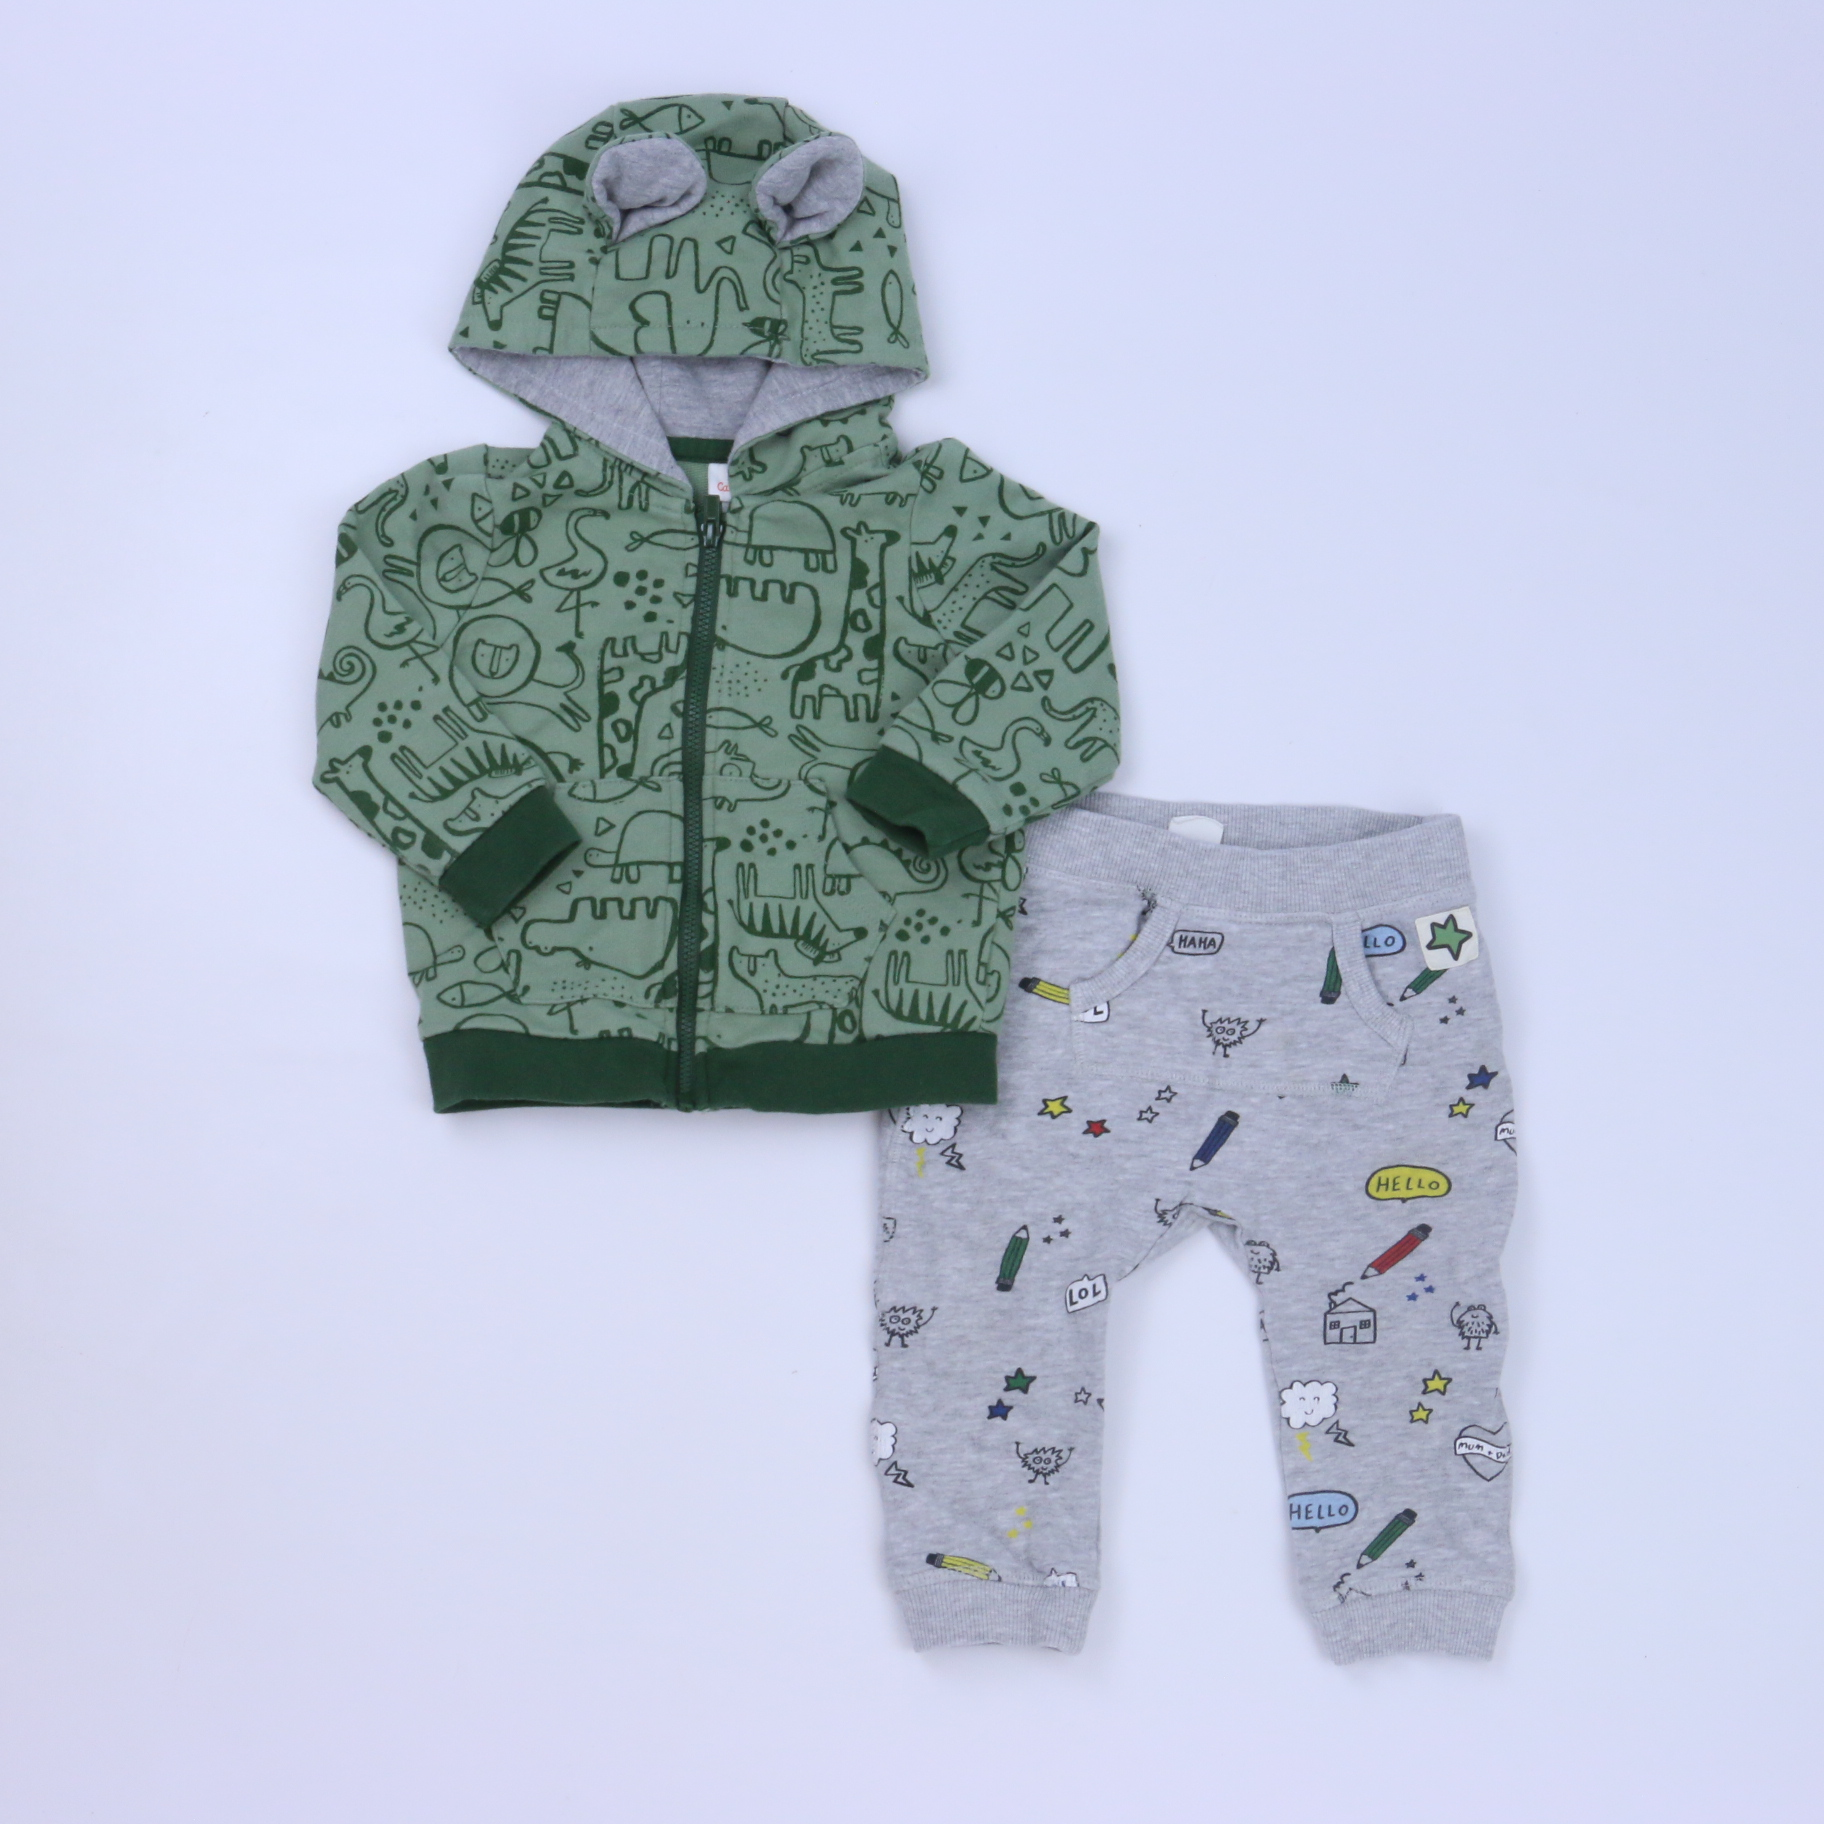 7393b1233 2-pieces Apparel Sets size: 6-12 Months - The Swoondle Society